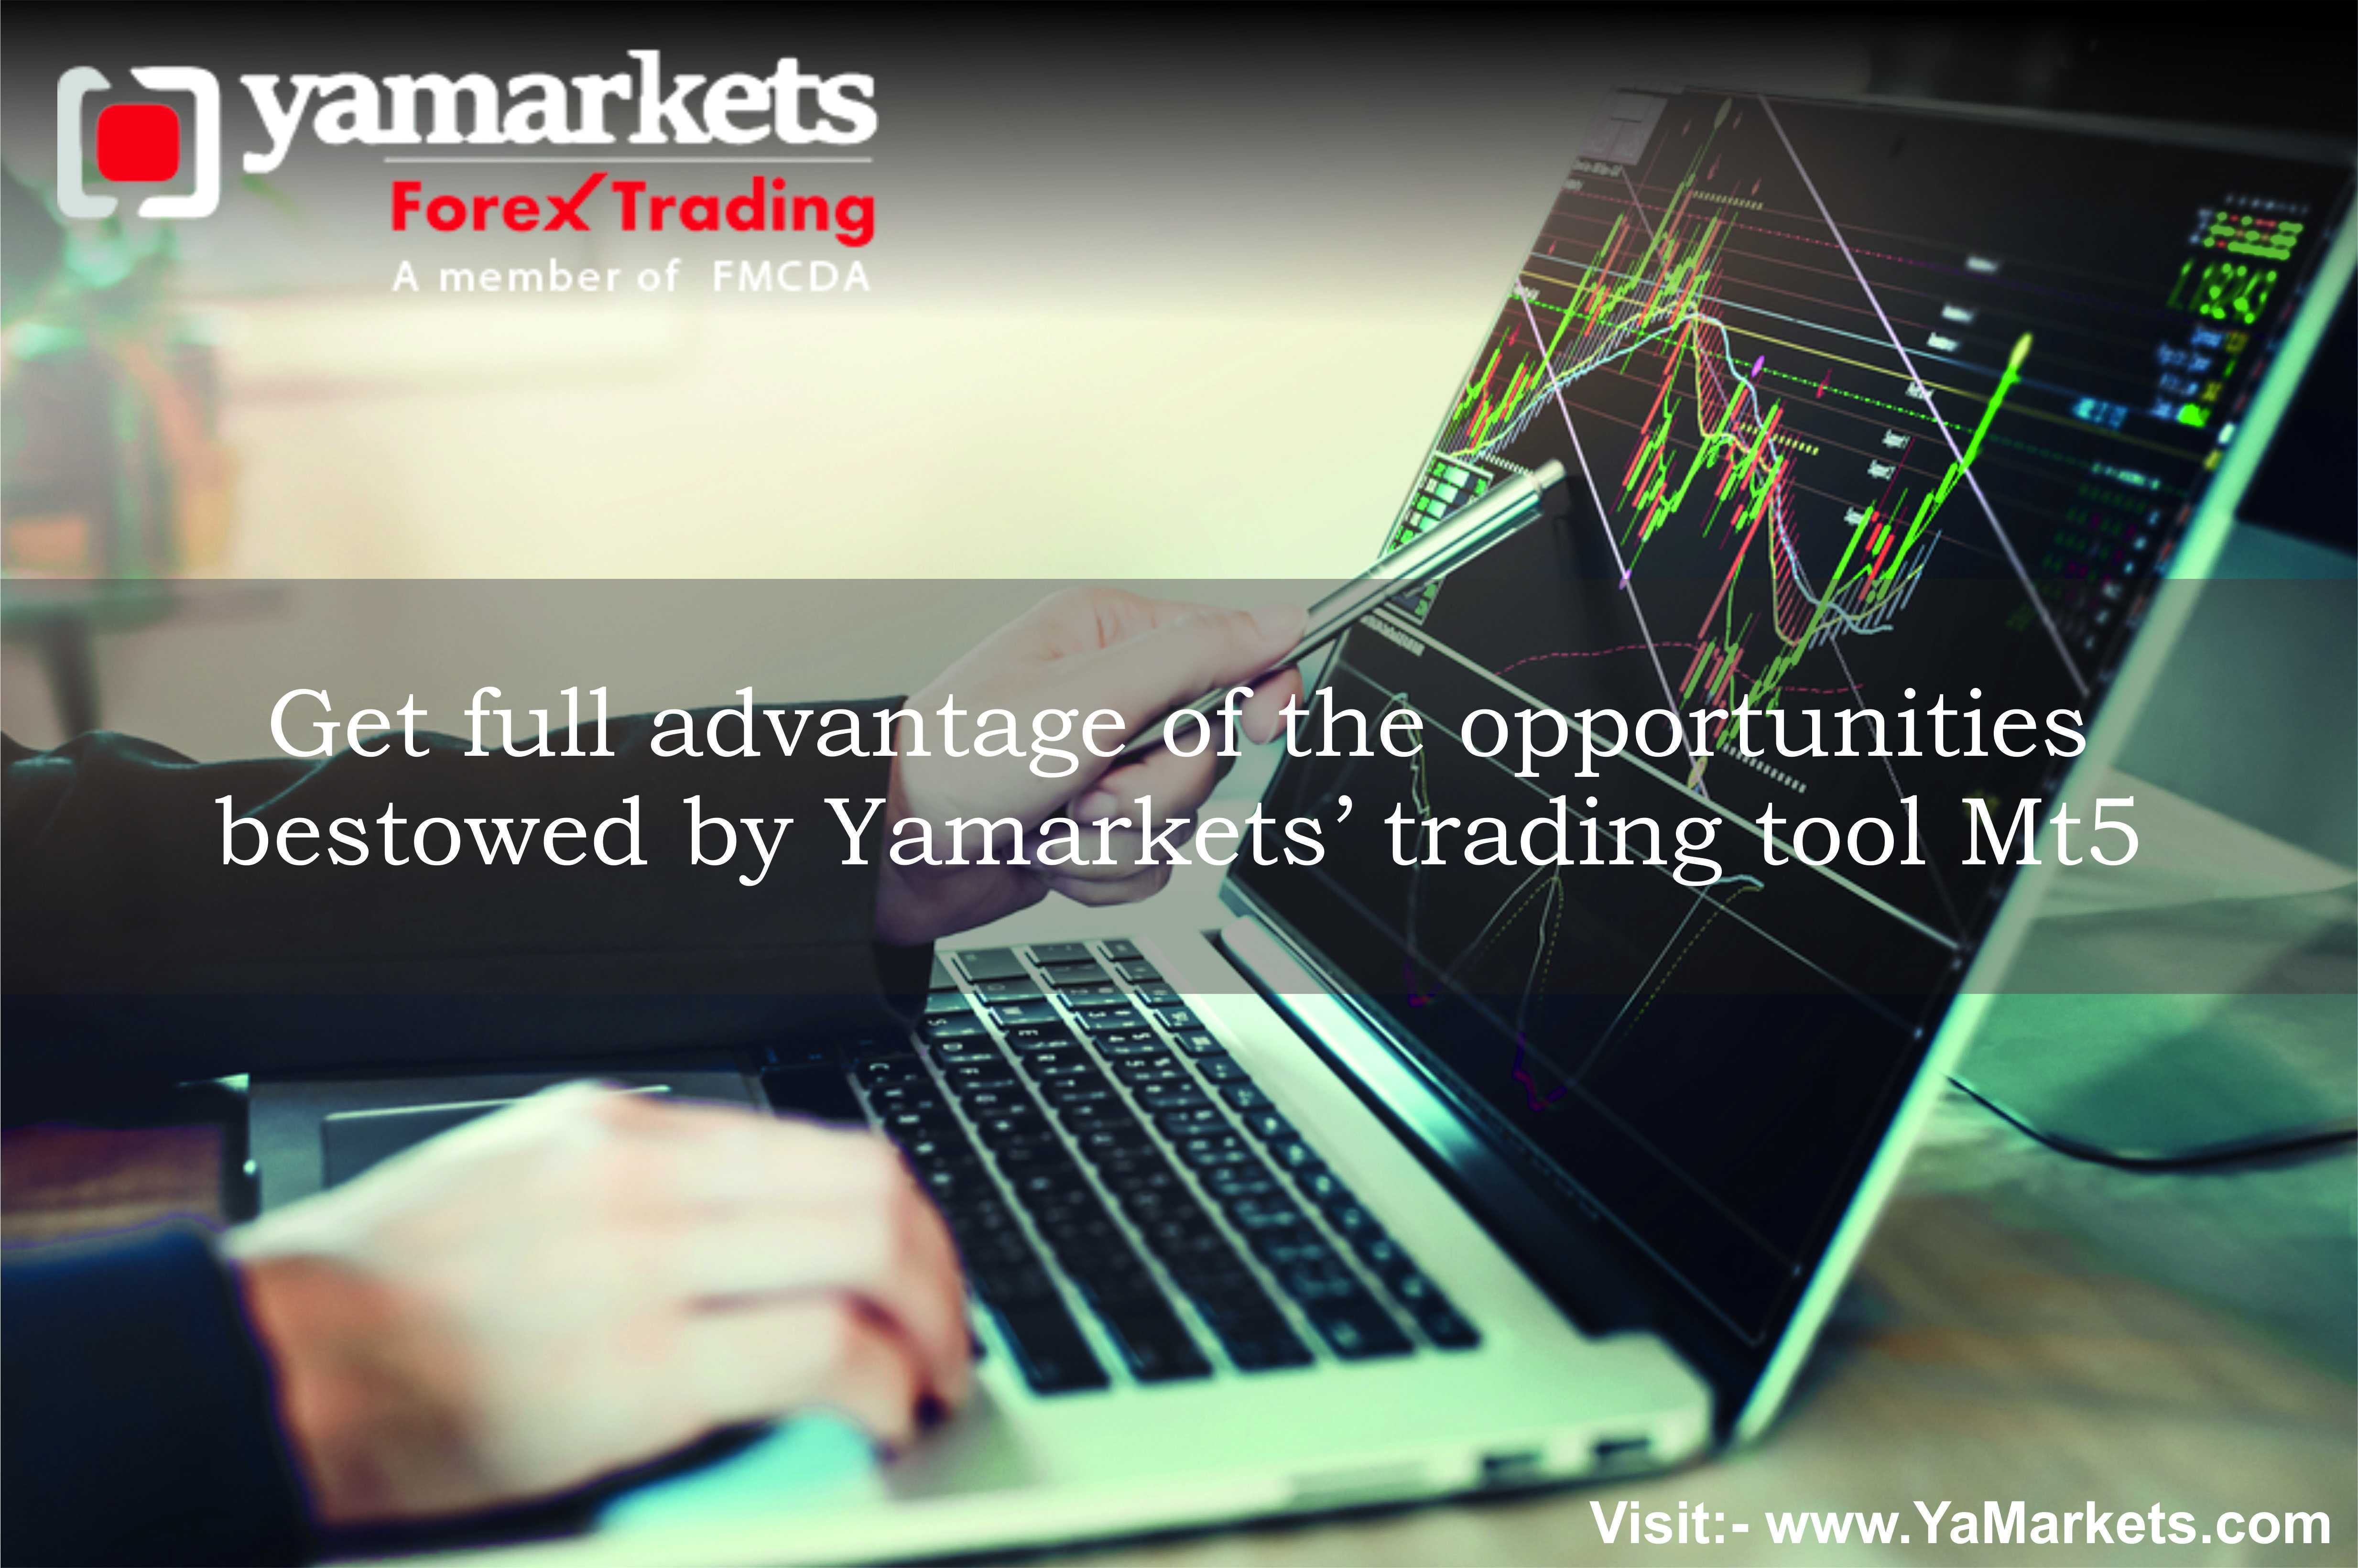 Get Full Advantage Of The Opportunities Bestowed By Yamarkets